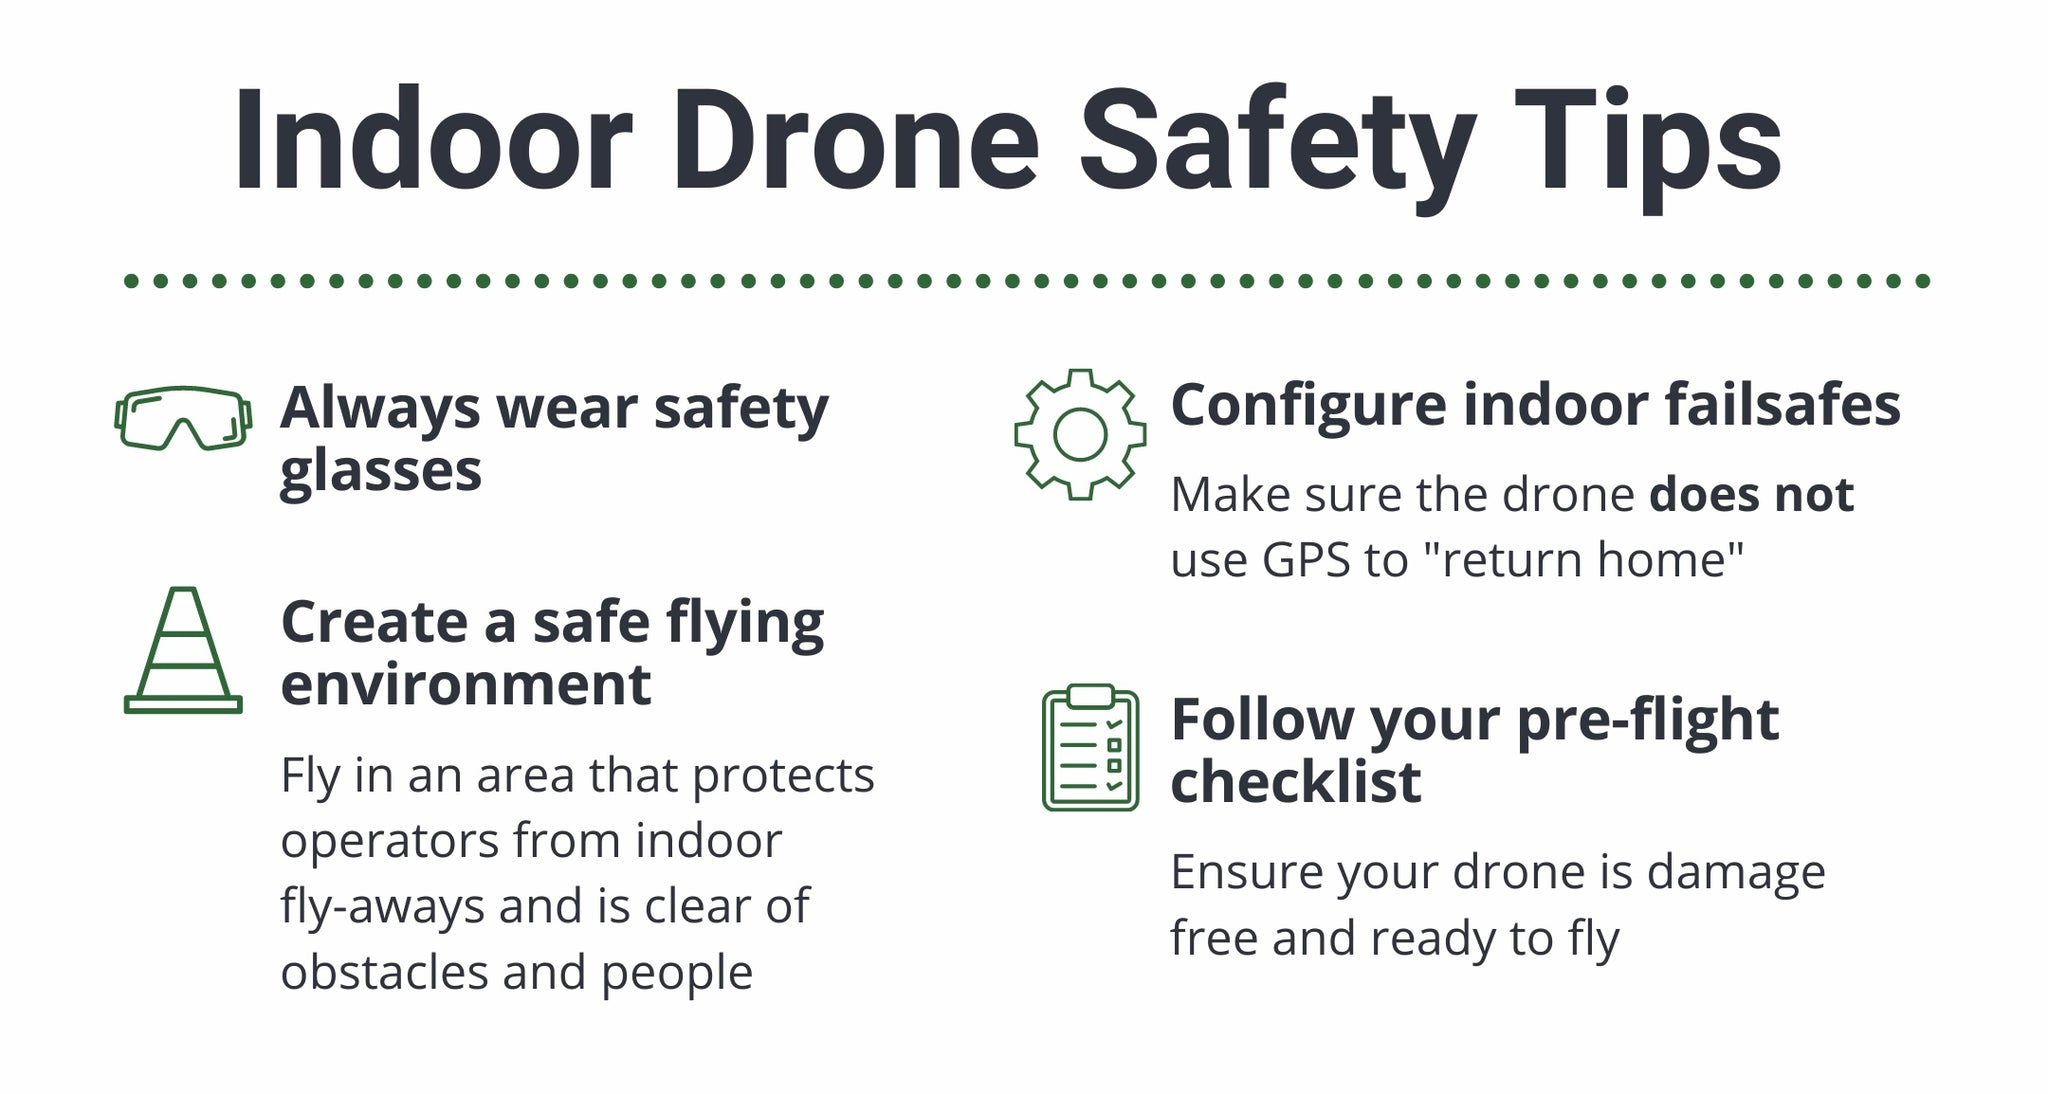 """Indoor Drone Safety Tips. Always wear safety glasses, create a safe flying environment fly in an area that protects operators from indoor fly-aways and is clear of obstacles and people. Configure indoor failsafes, make sure the drone does not use GPS to """"return home"""". follow your pre-flight checklist, ensure your drone is damage free and ready to fly."""